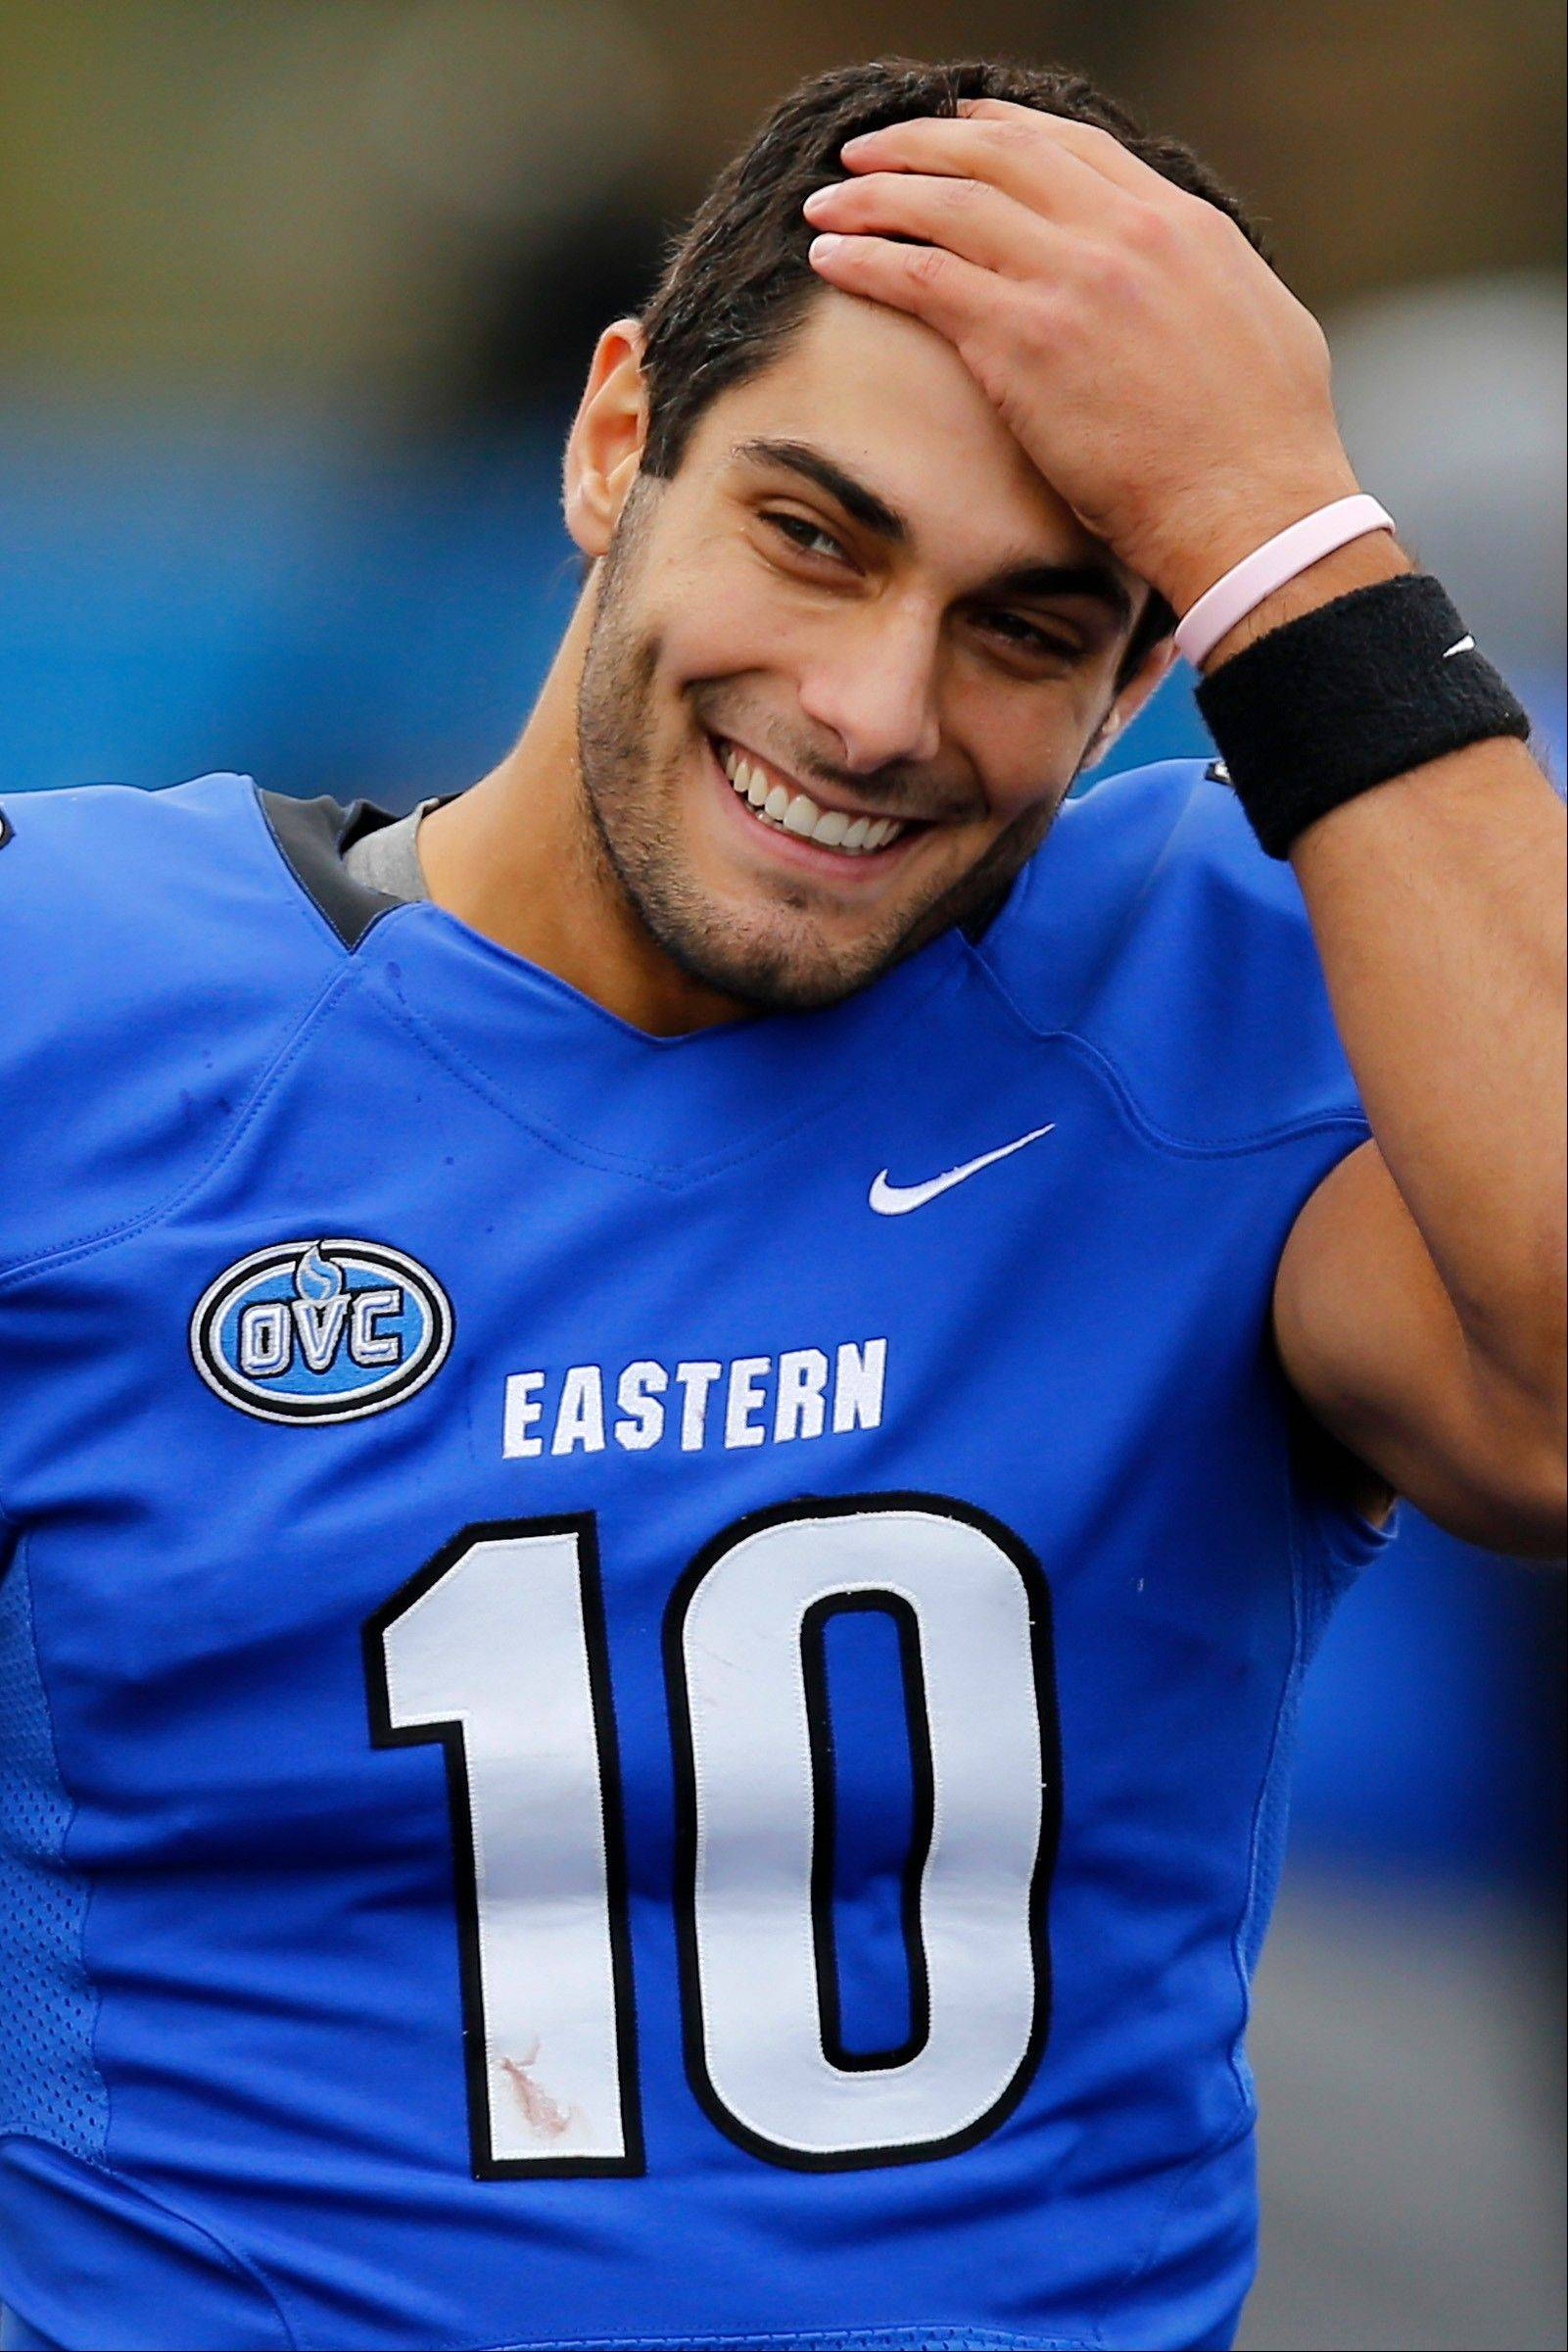 This Nov. 2 file photo shows Eastern Illinois quarterback Jimmy Garoppolo on the sideline during the second half of an NCAA football game against Tennessee Tech at O�Brien Field in Charleston, Ill. Garoppolo, an Arlington Heights native, has been selected to The Associated Press FCS All-America team.